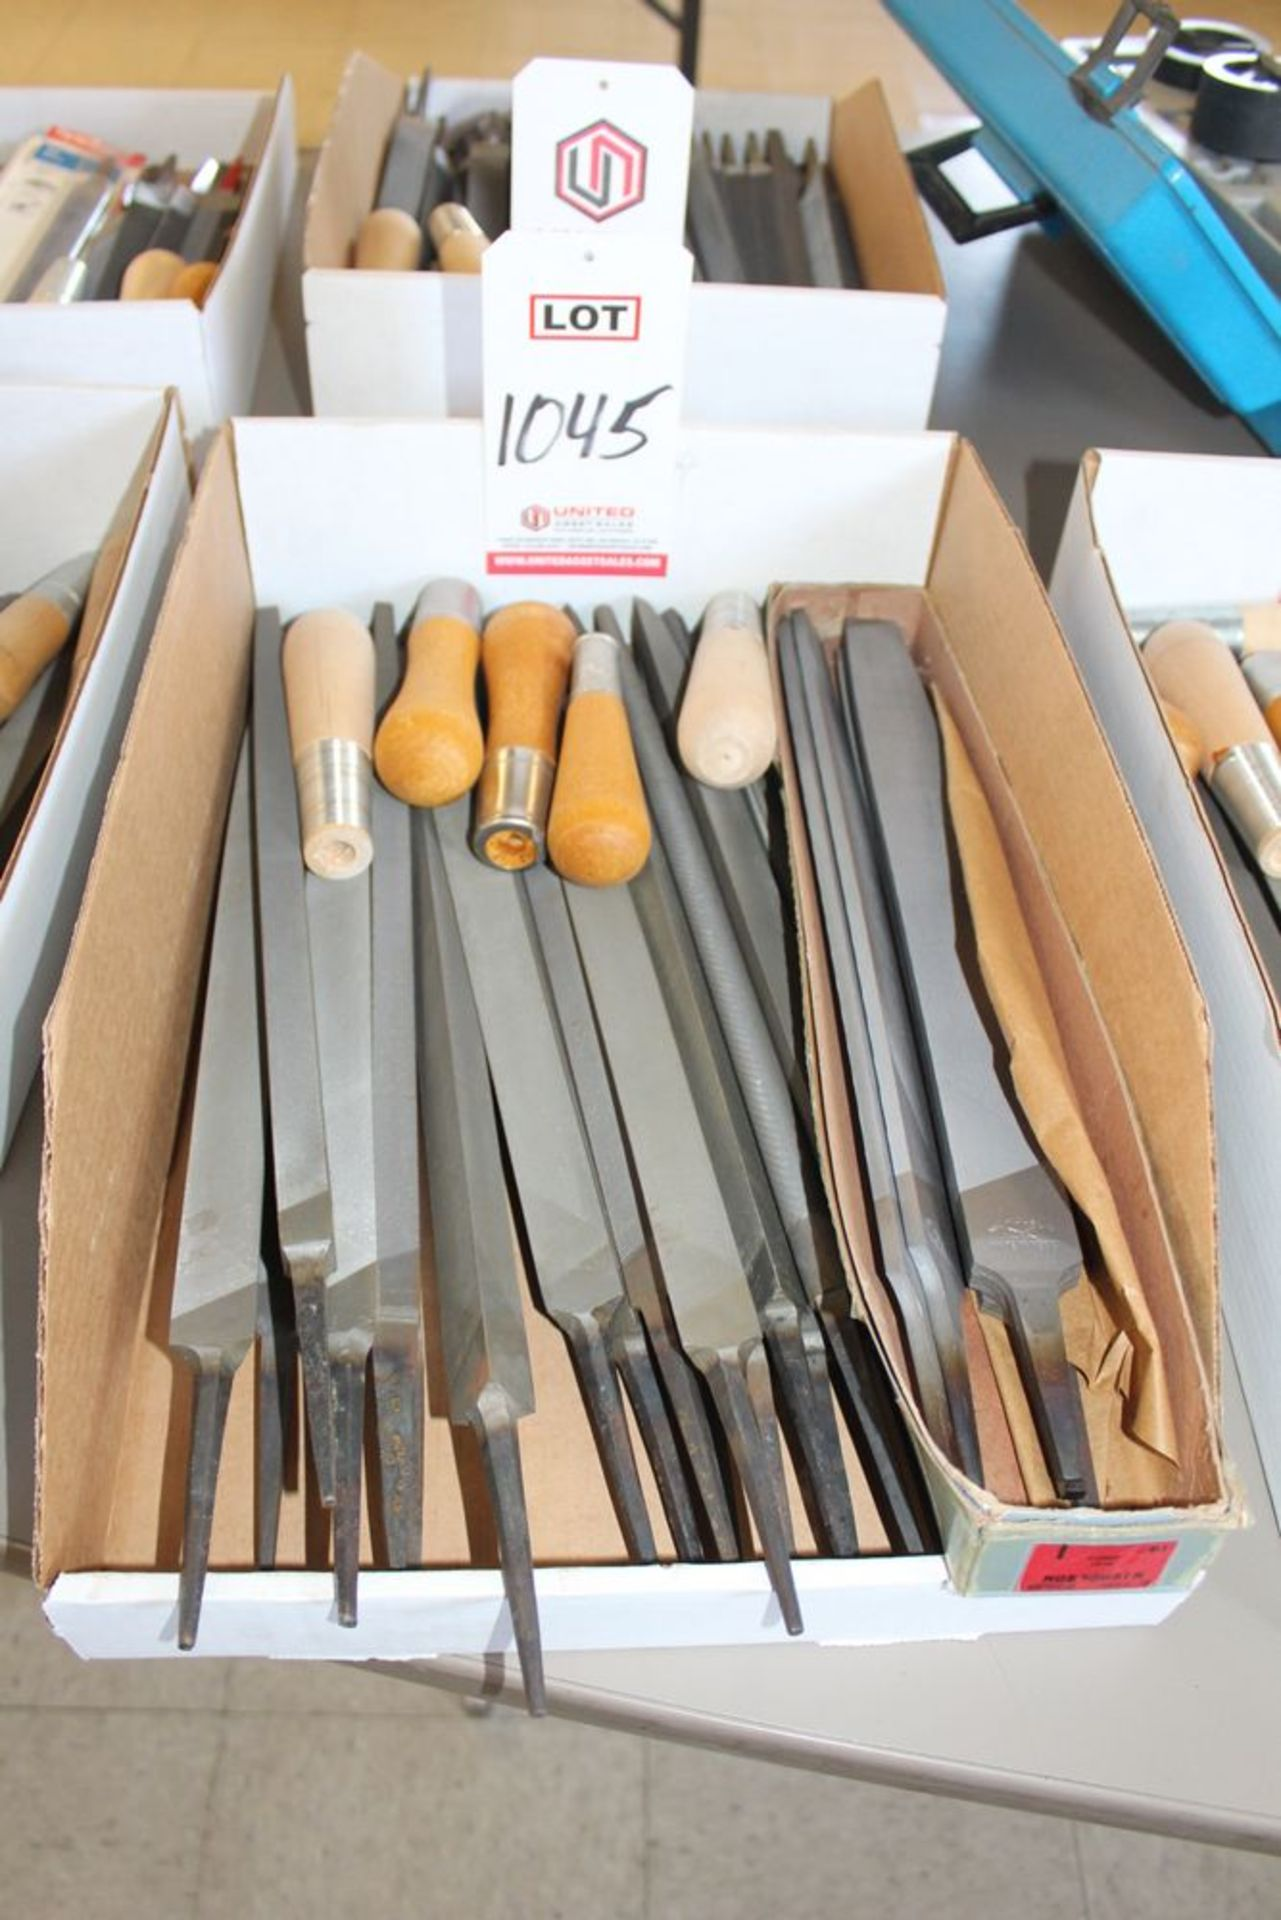 Lot 1045 - LOT - FILES, (LUNCHROOM)